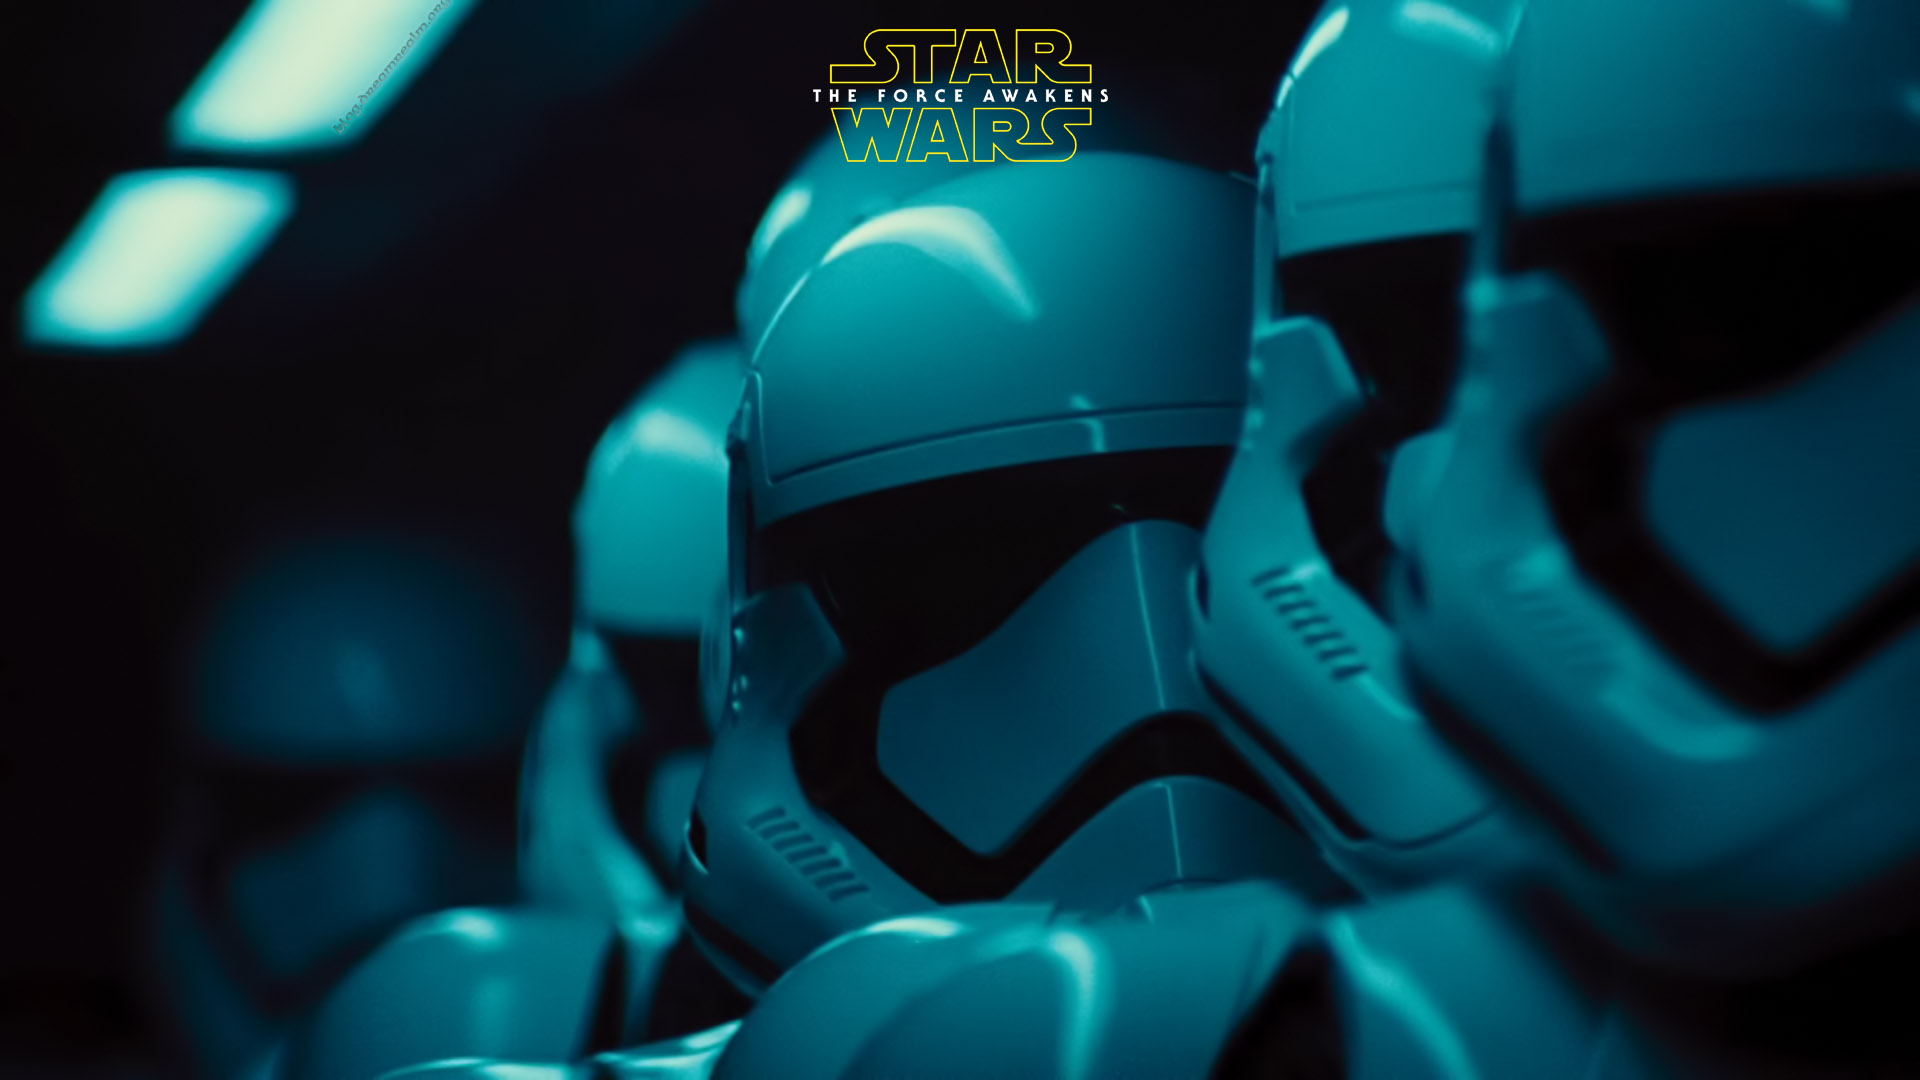 Showing Gallery For Star Wars 7 Wallpaper 1920x1080